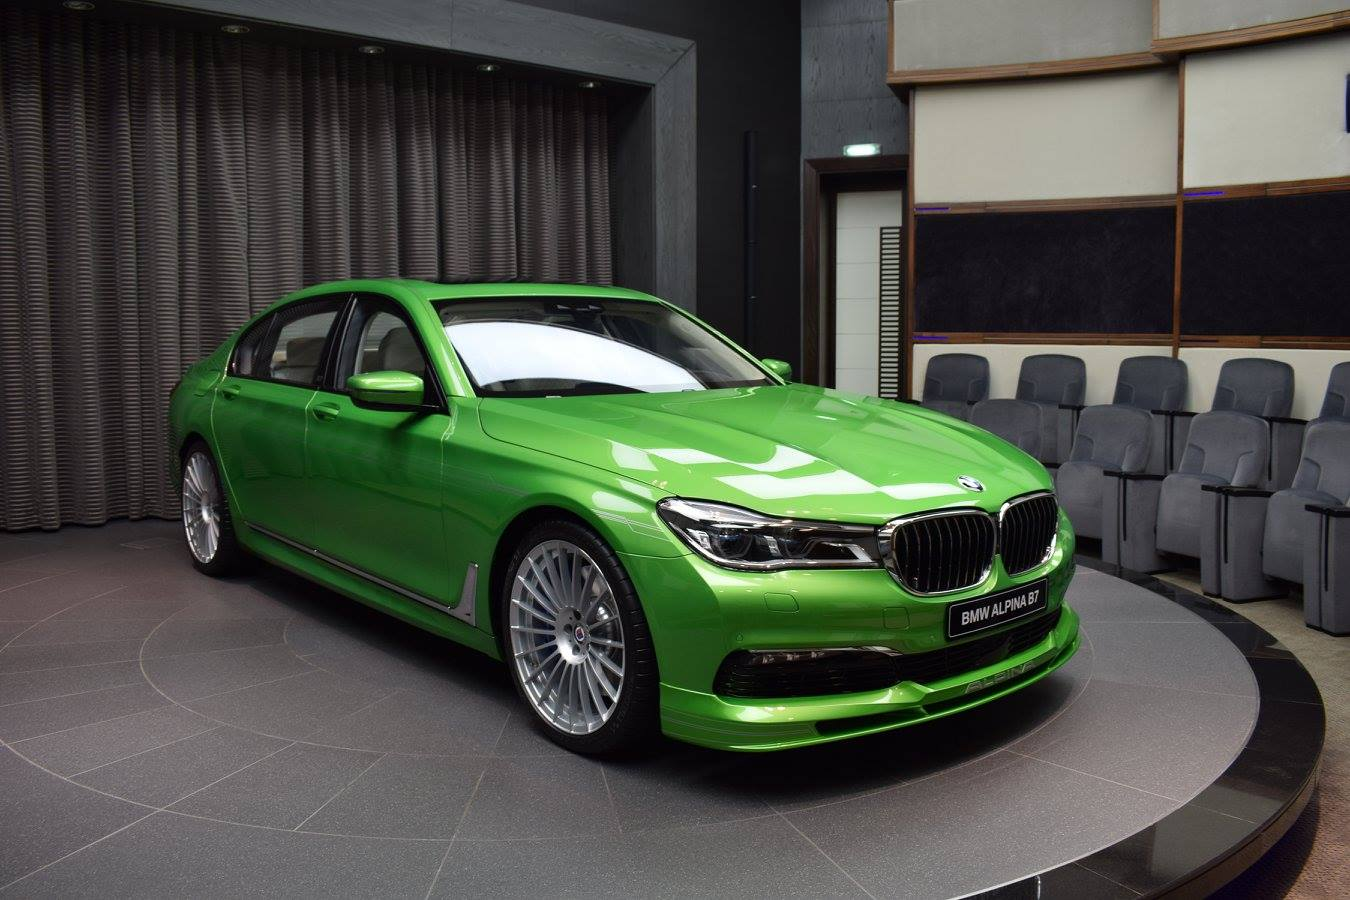 Alpina B7 Painted in Java Green Metallic Gets All the Attention